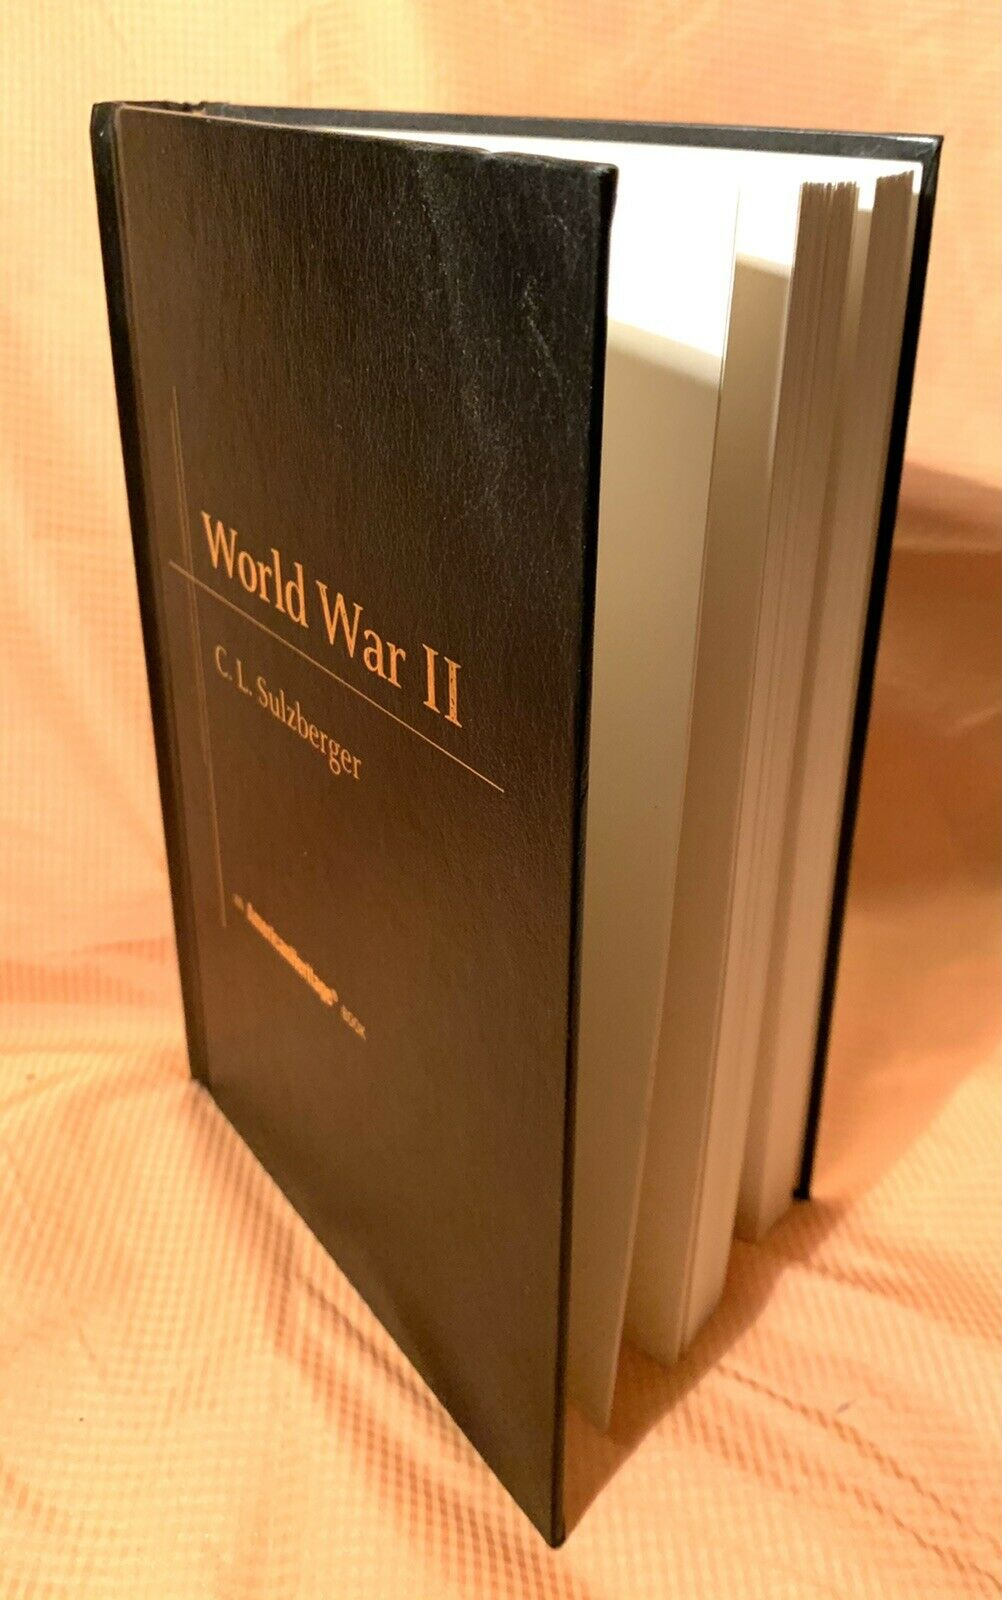 World War II  by C. L. Sulzberger 1997 with 372 pages and a Complete Clean Copy |